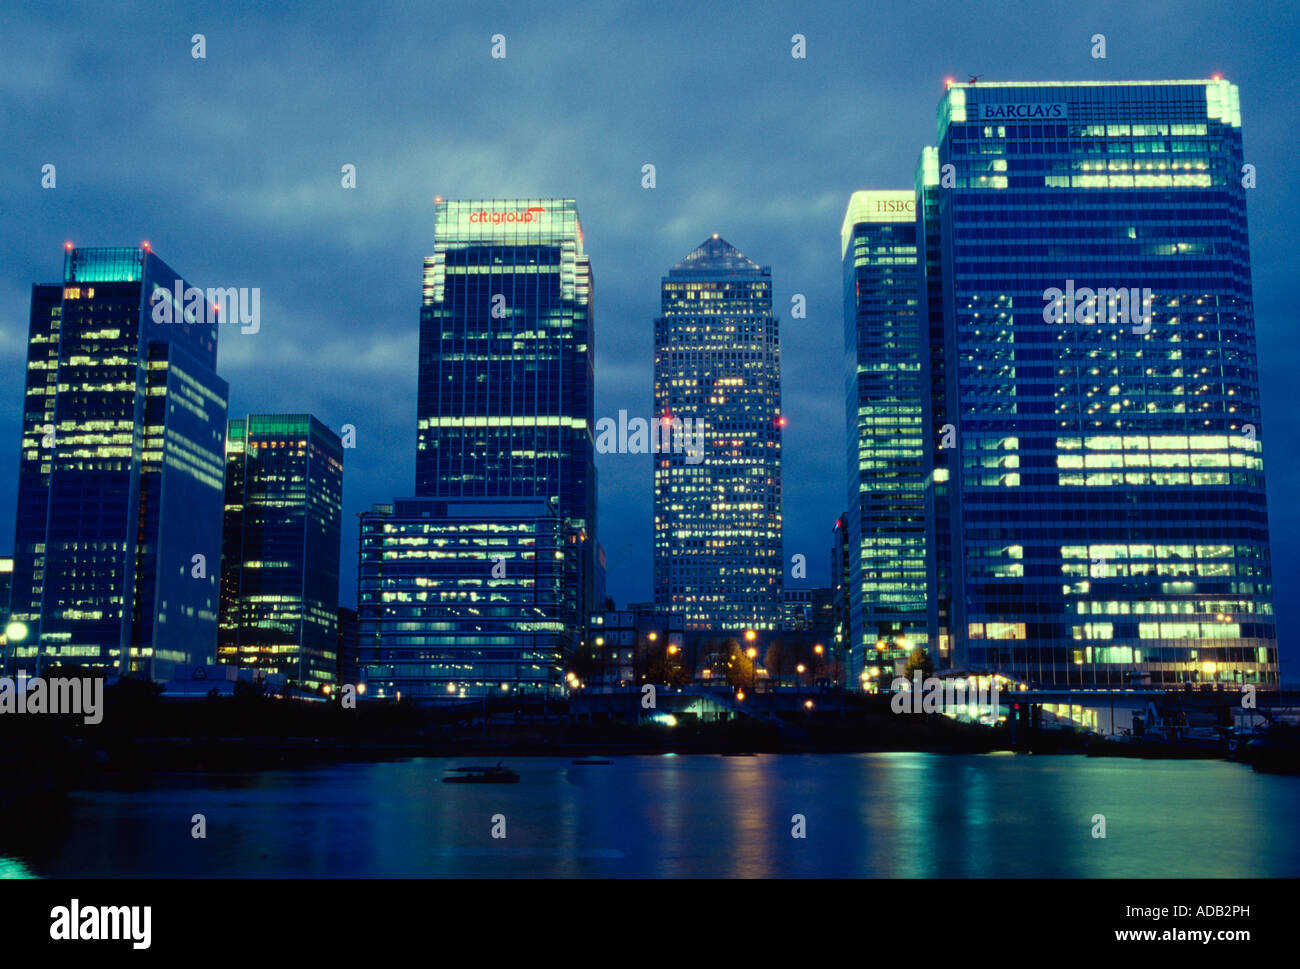 citicorp no 1 canada square hsbc barclays bank hq office buildings at dusk illuminated canary wharf london docklands